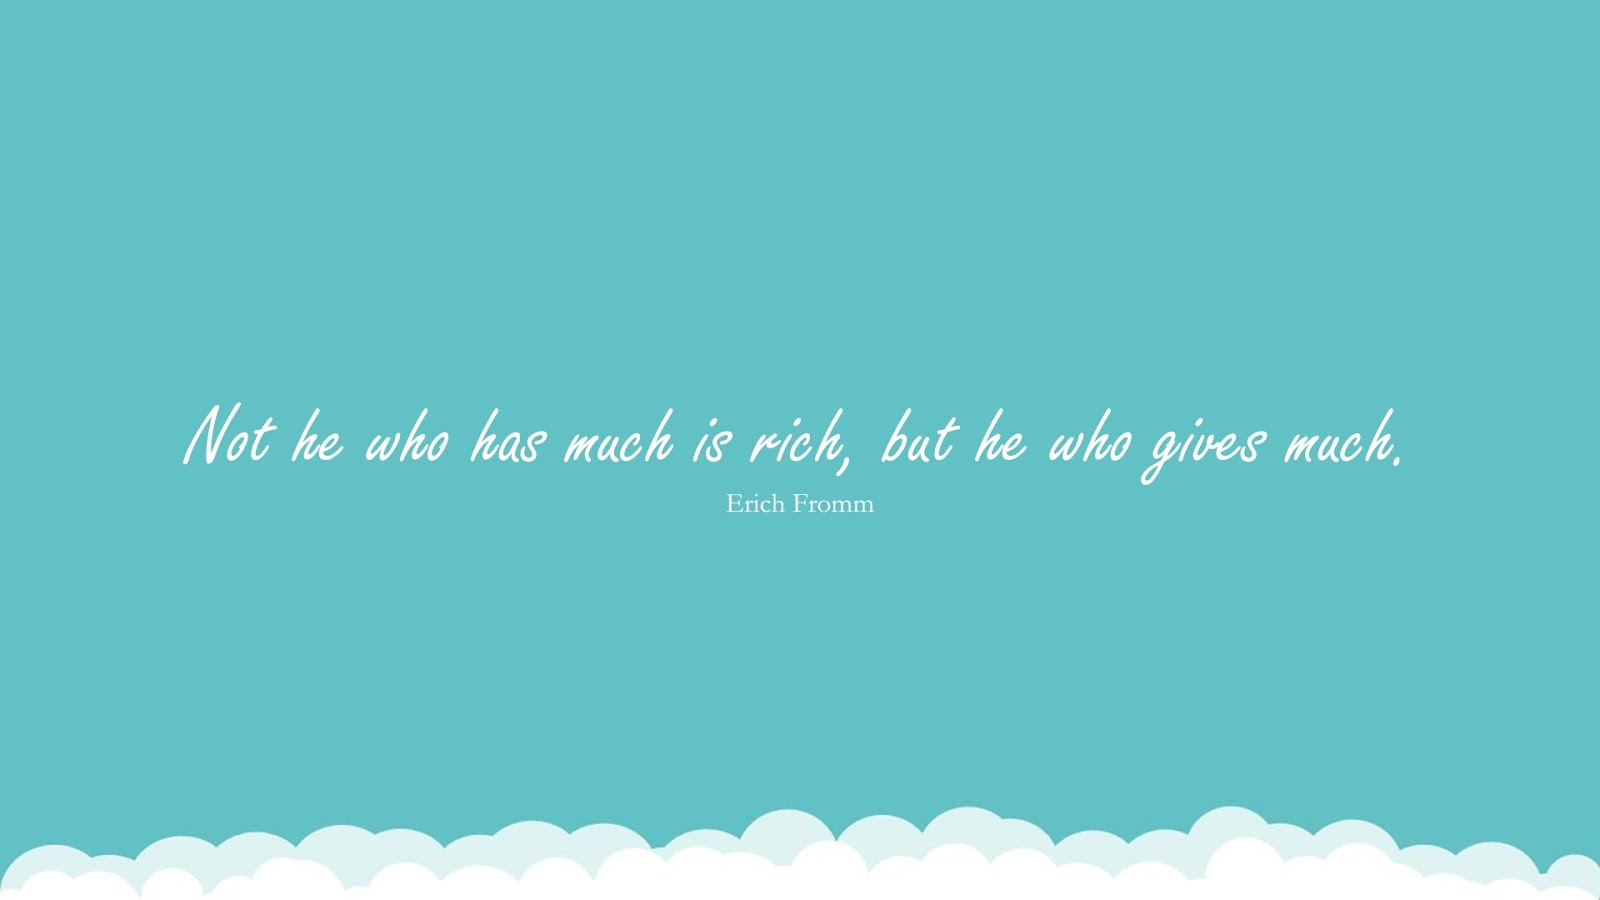 Not he who has much is rich, but he who gives much. (Erich Fromm);  #WordsofWisdom